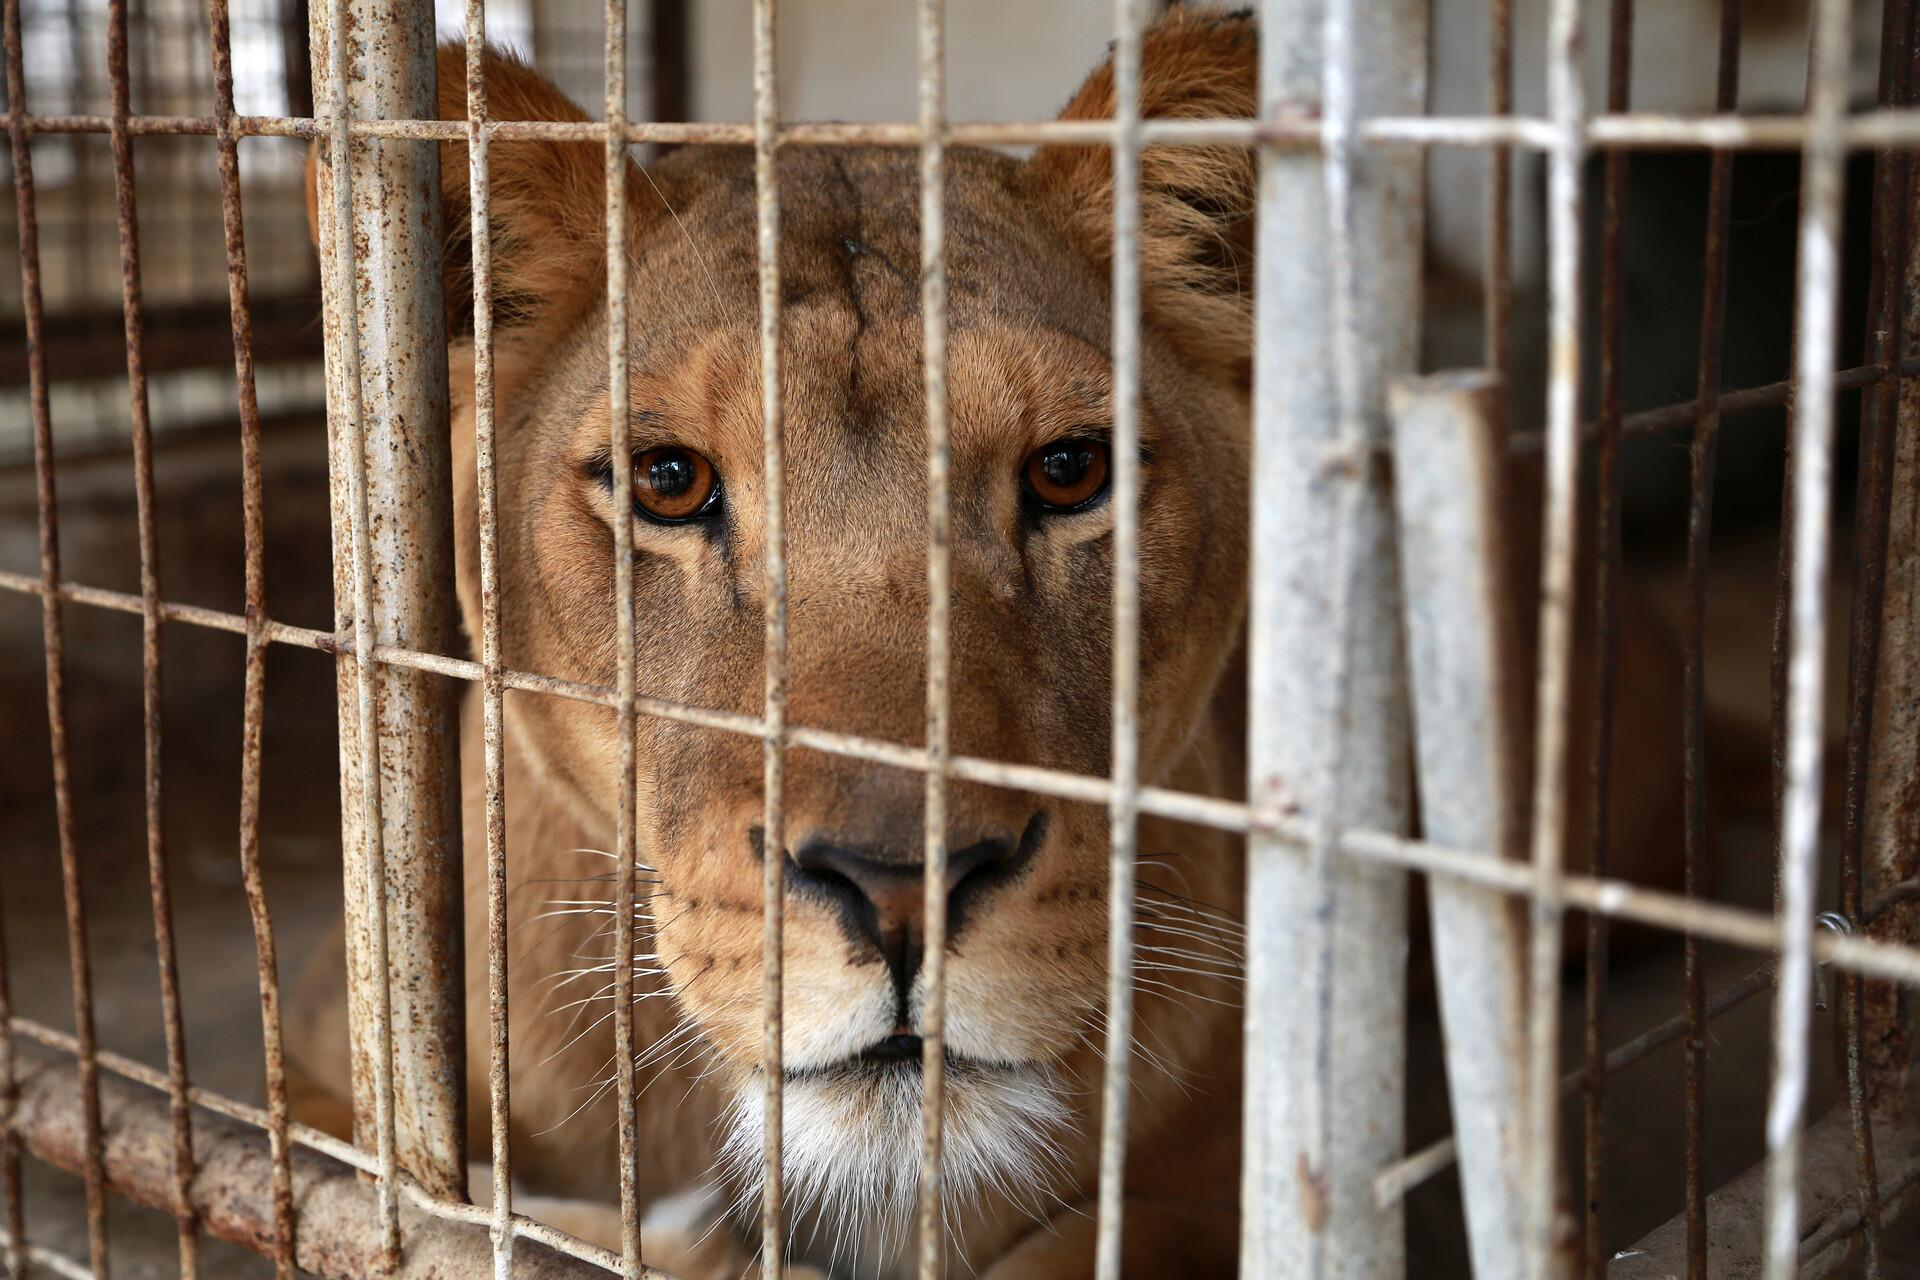 Lioness behind bars